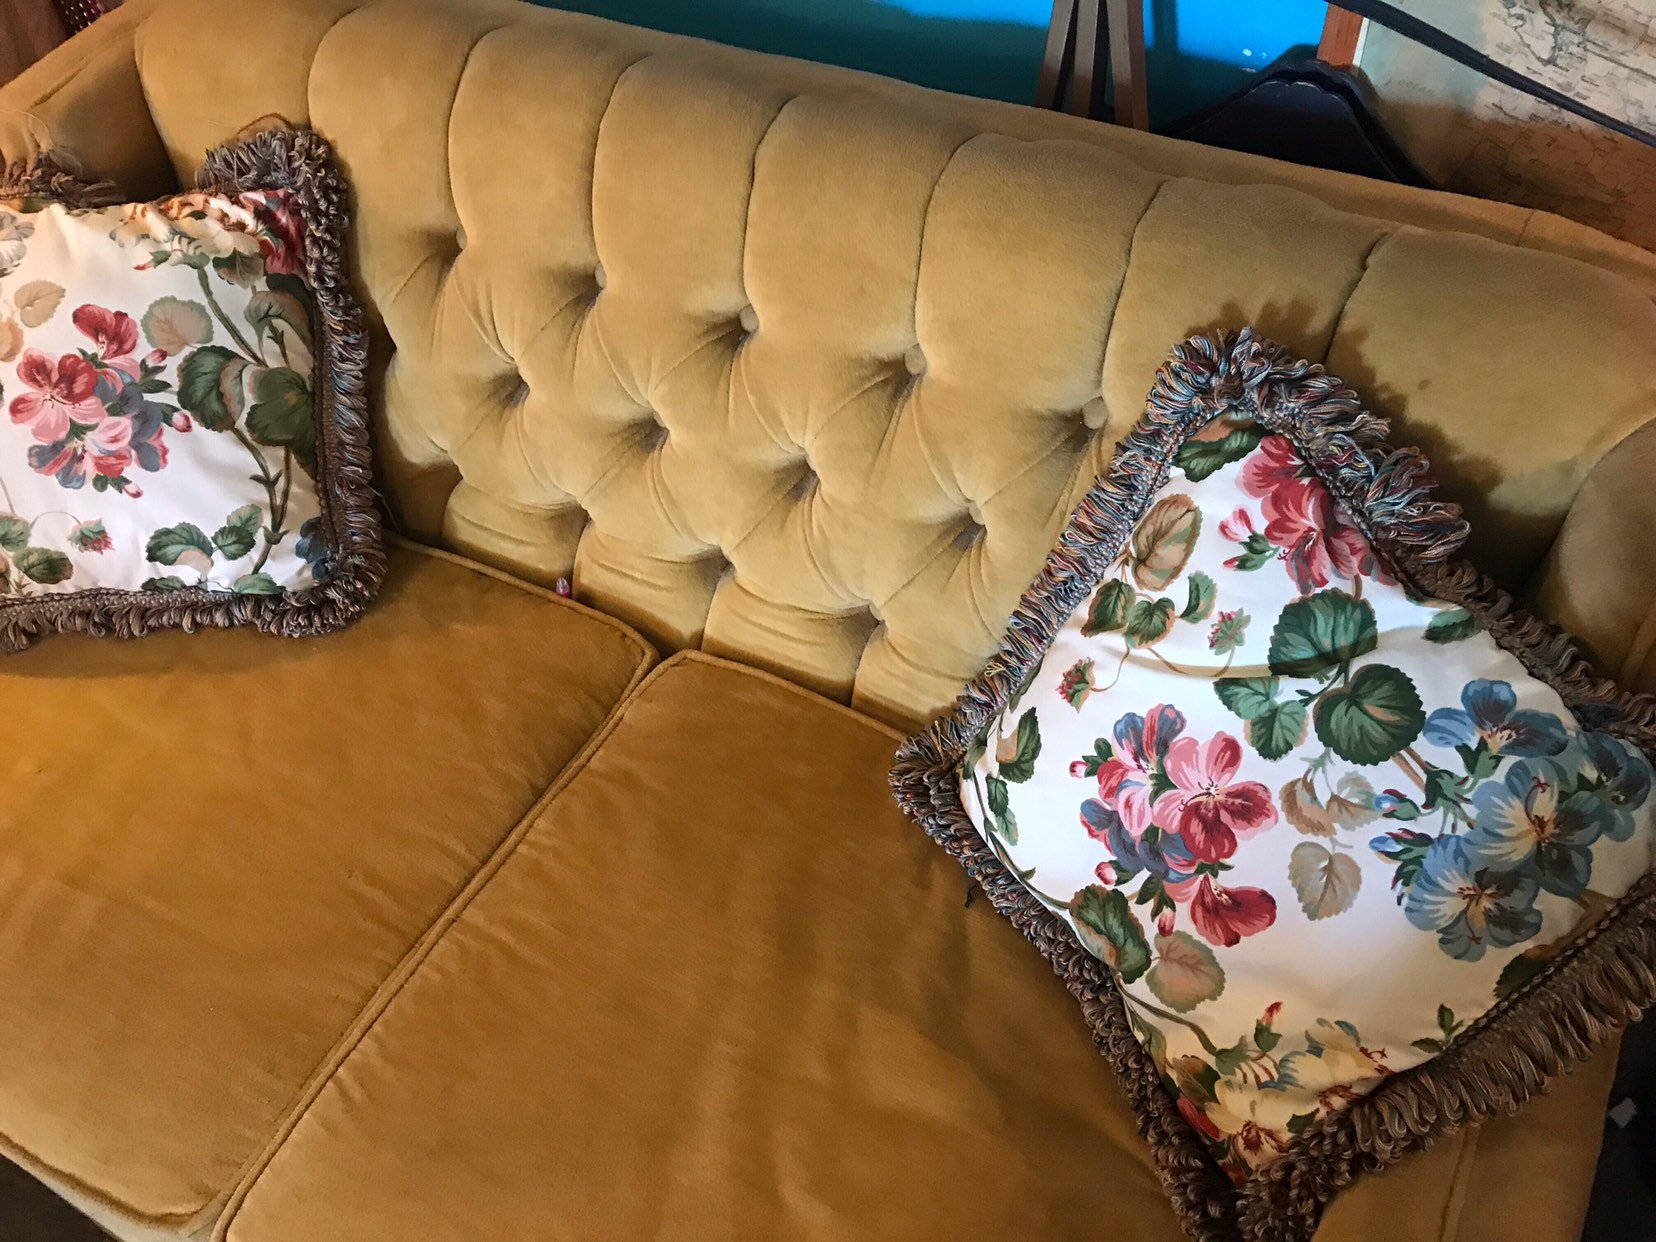 Remarkable Vintage Pillows Vintage Floral Pillow Set Small Couch Ocoug Best Dining Table And Chair Ideas Images Ocougorg